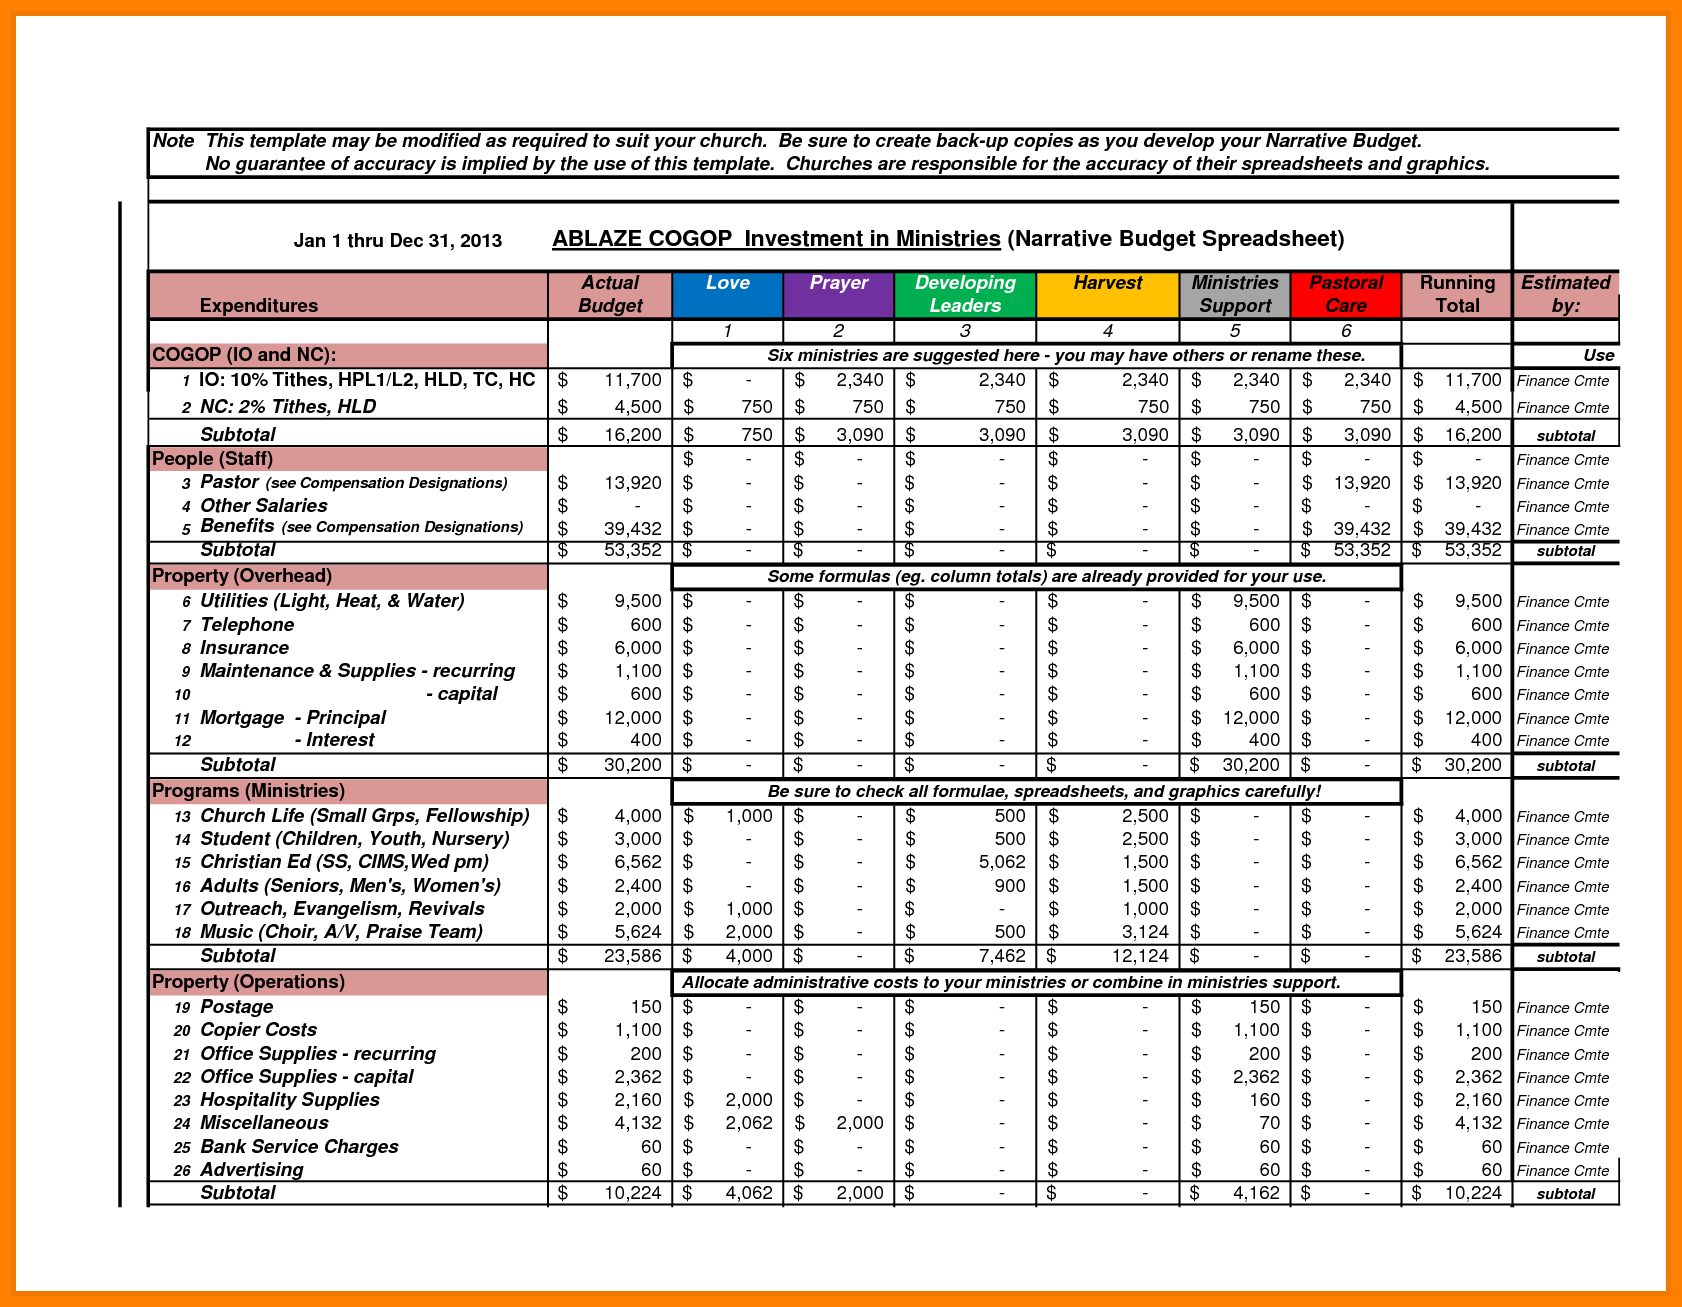 Budget Forecast Spreadsheet Inside 7  Budget Forecast Spreadsheet  Credit Spreadsheet